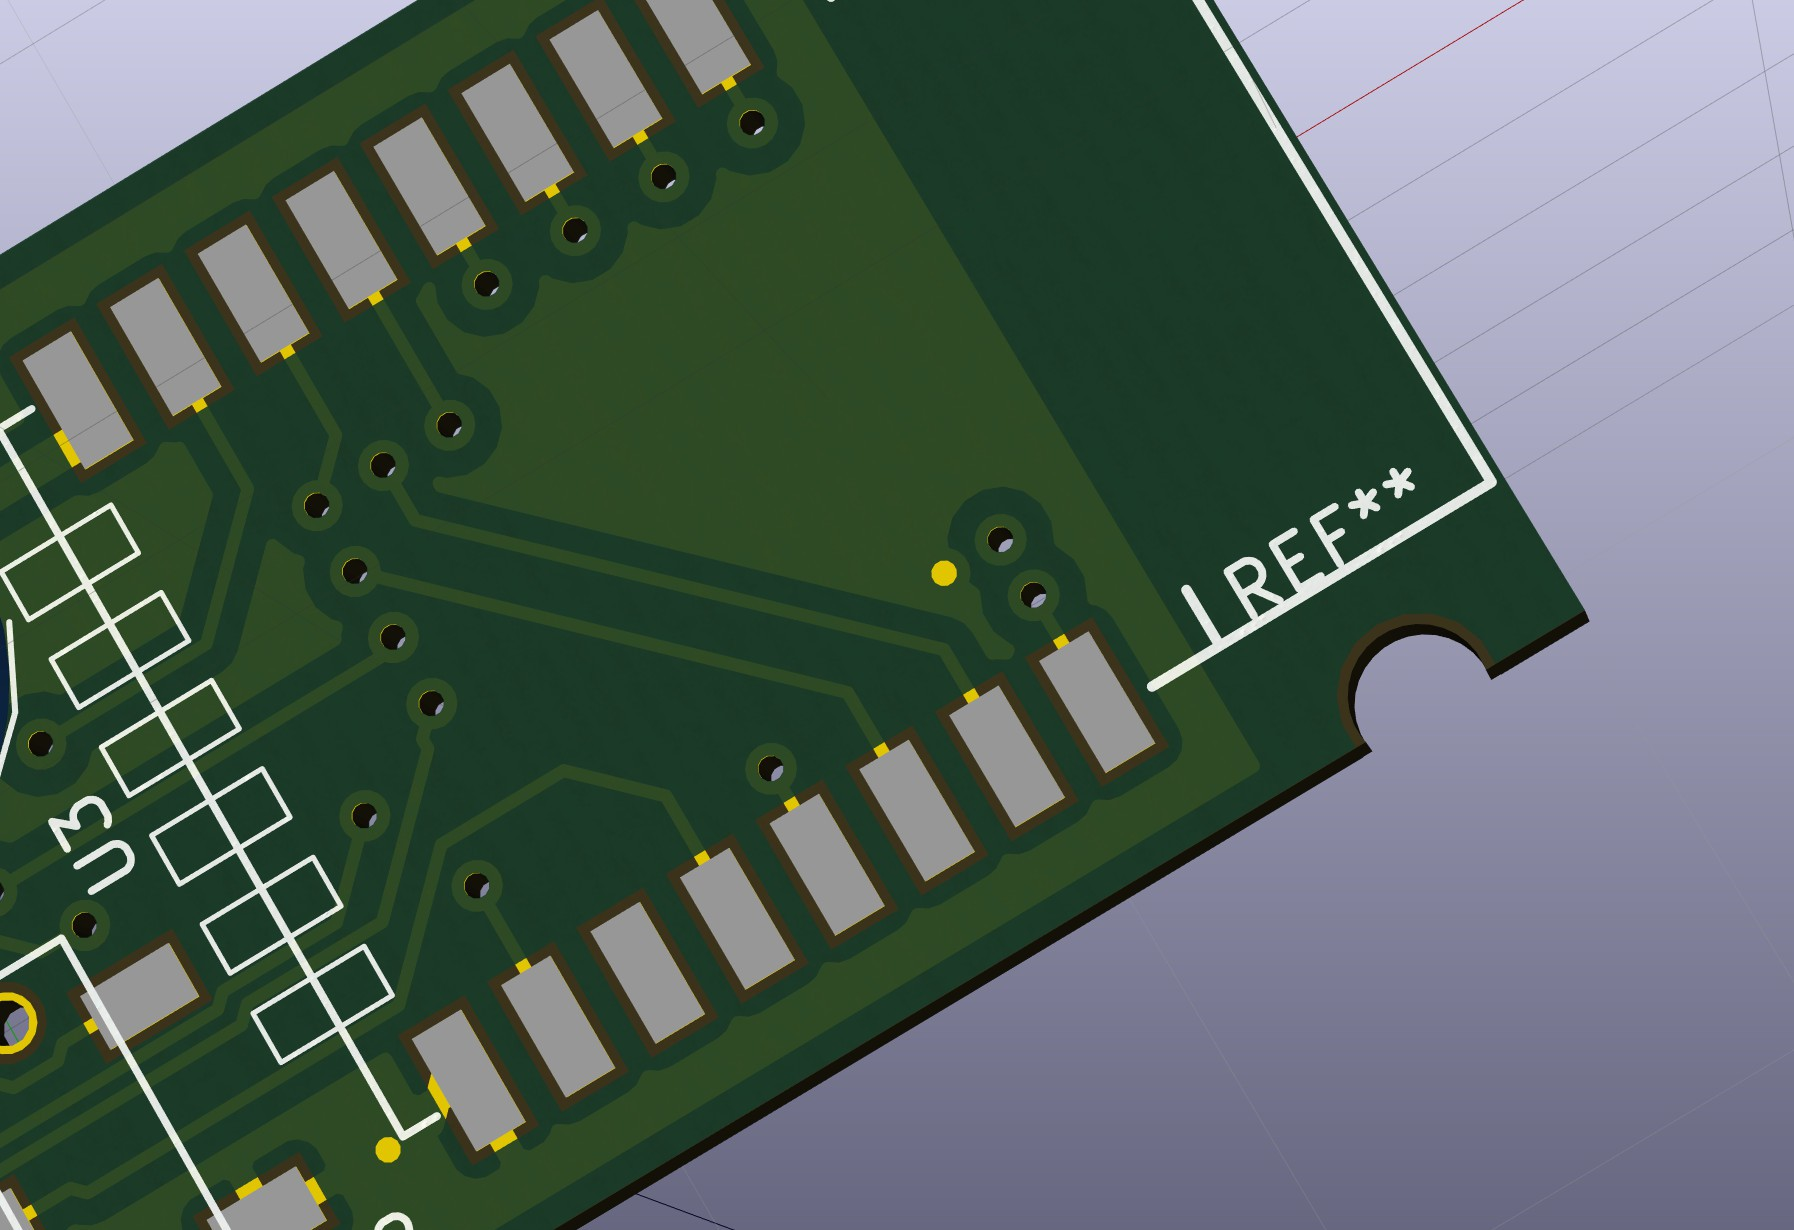 200lx Modules Hp Serial Port Diagram Ill Have To Check If That Is Ok For Reference Thats 27mm Hole From Kicad Library M25 Screw Which Pretty Much The Only Thing Possibly